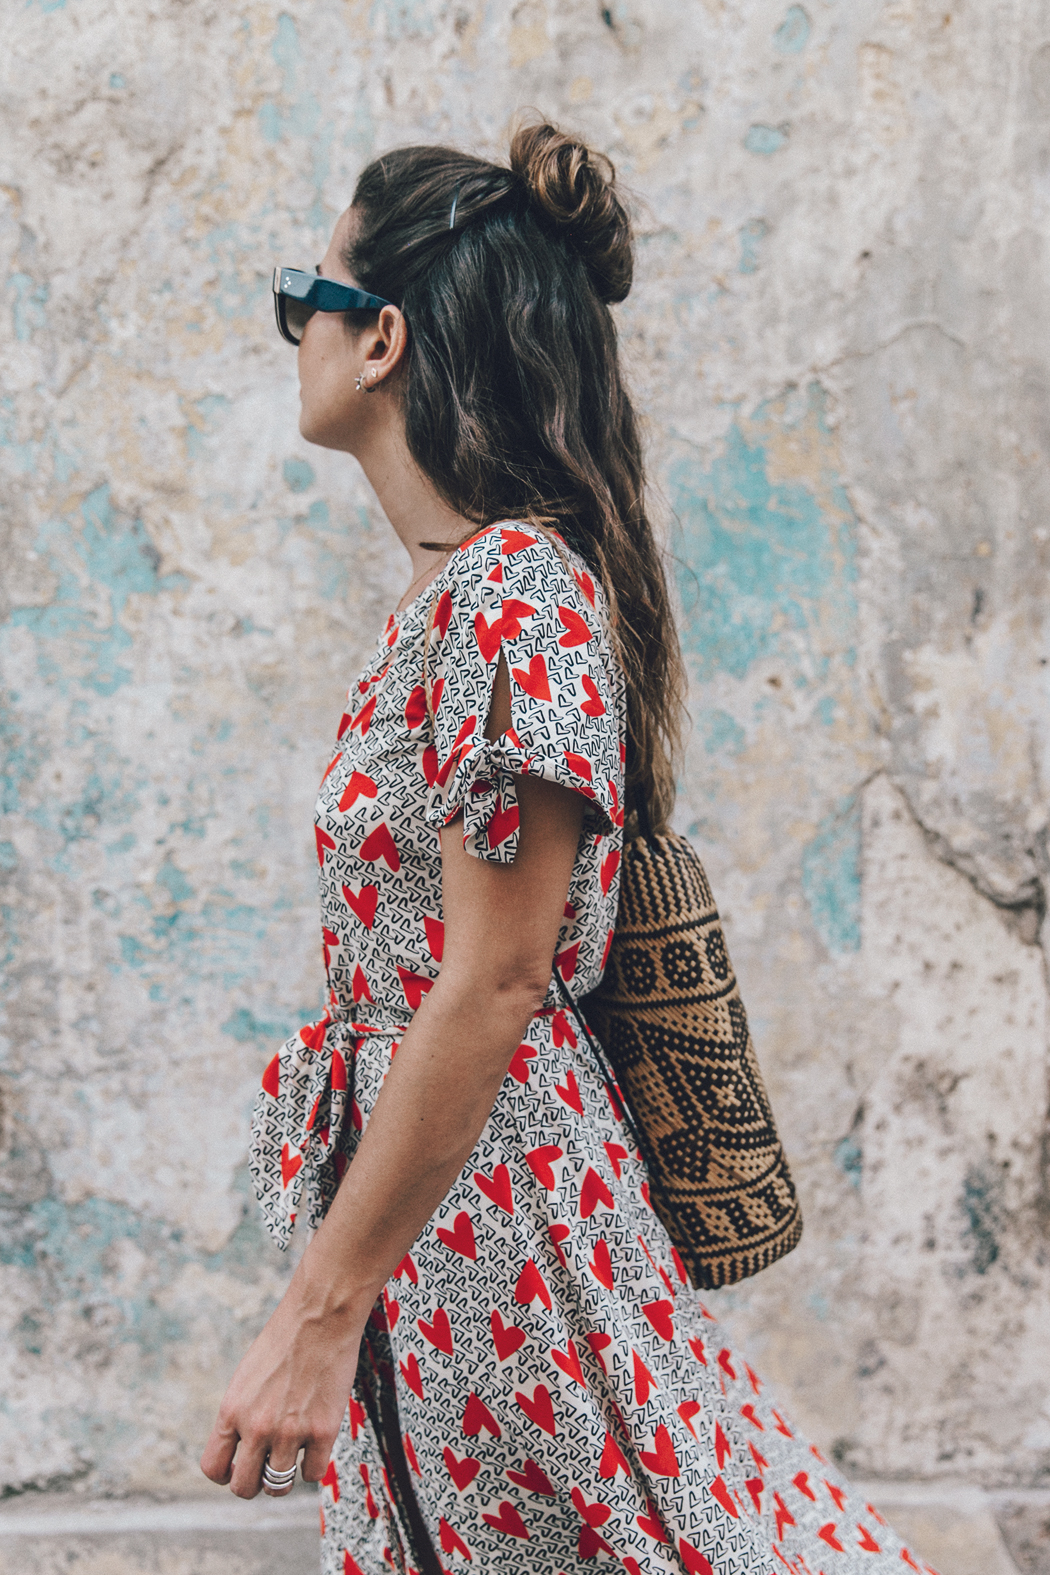 Cuba-La_Habana_Vieja-Hearts_Dress-Styled_By_Me-Aloha_Espadrilles-Outfit-Street_Style-Dress-Backpack-51